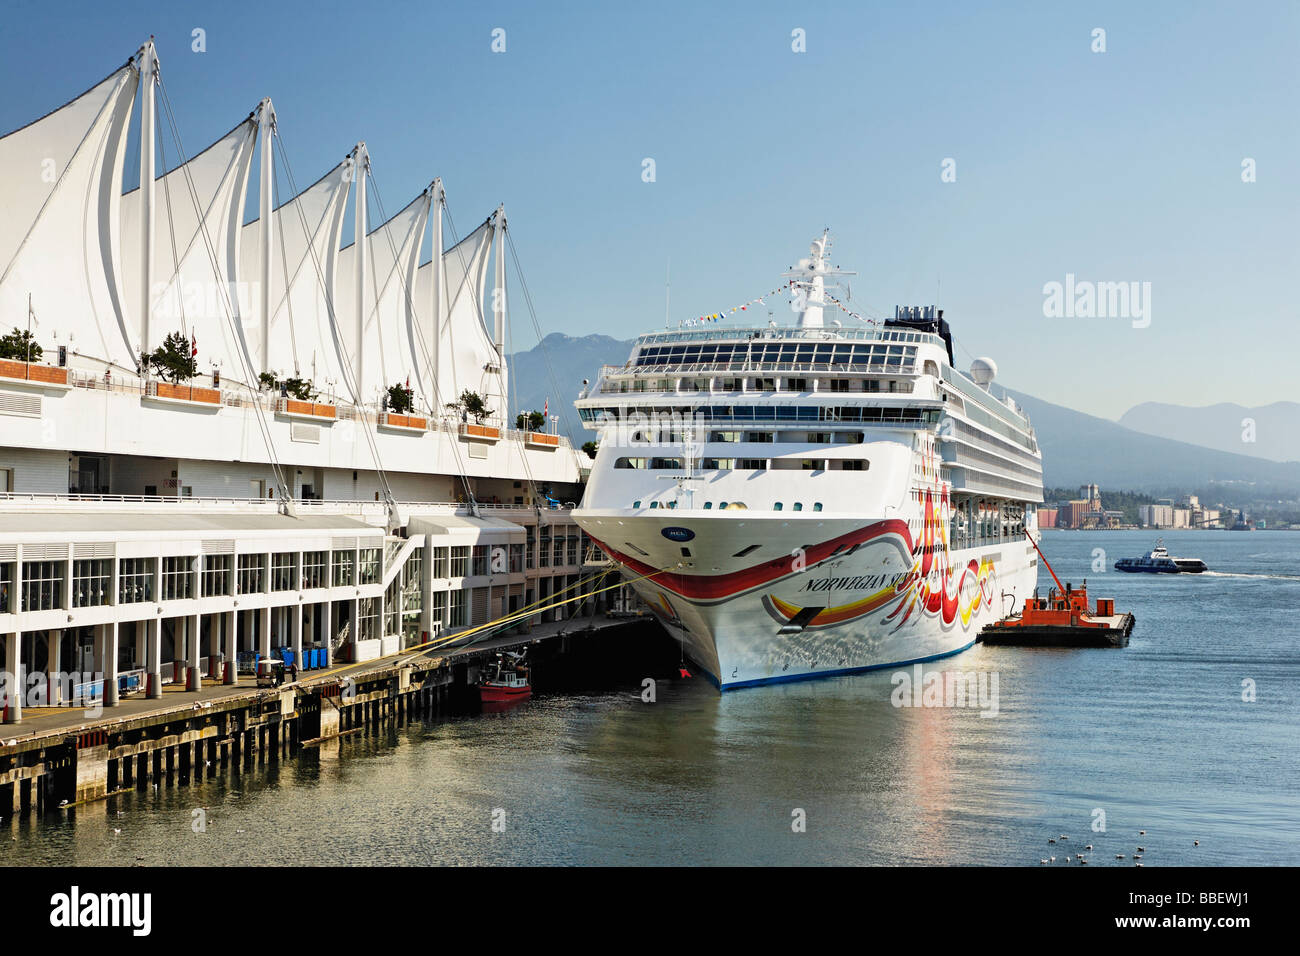 Canada Place A Major Vancouver Landmark Is Where Many Cruise Ships - How many cruise ships are there